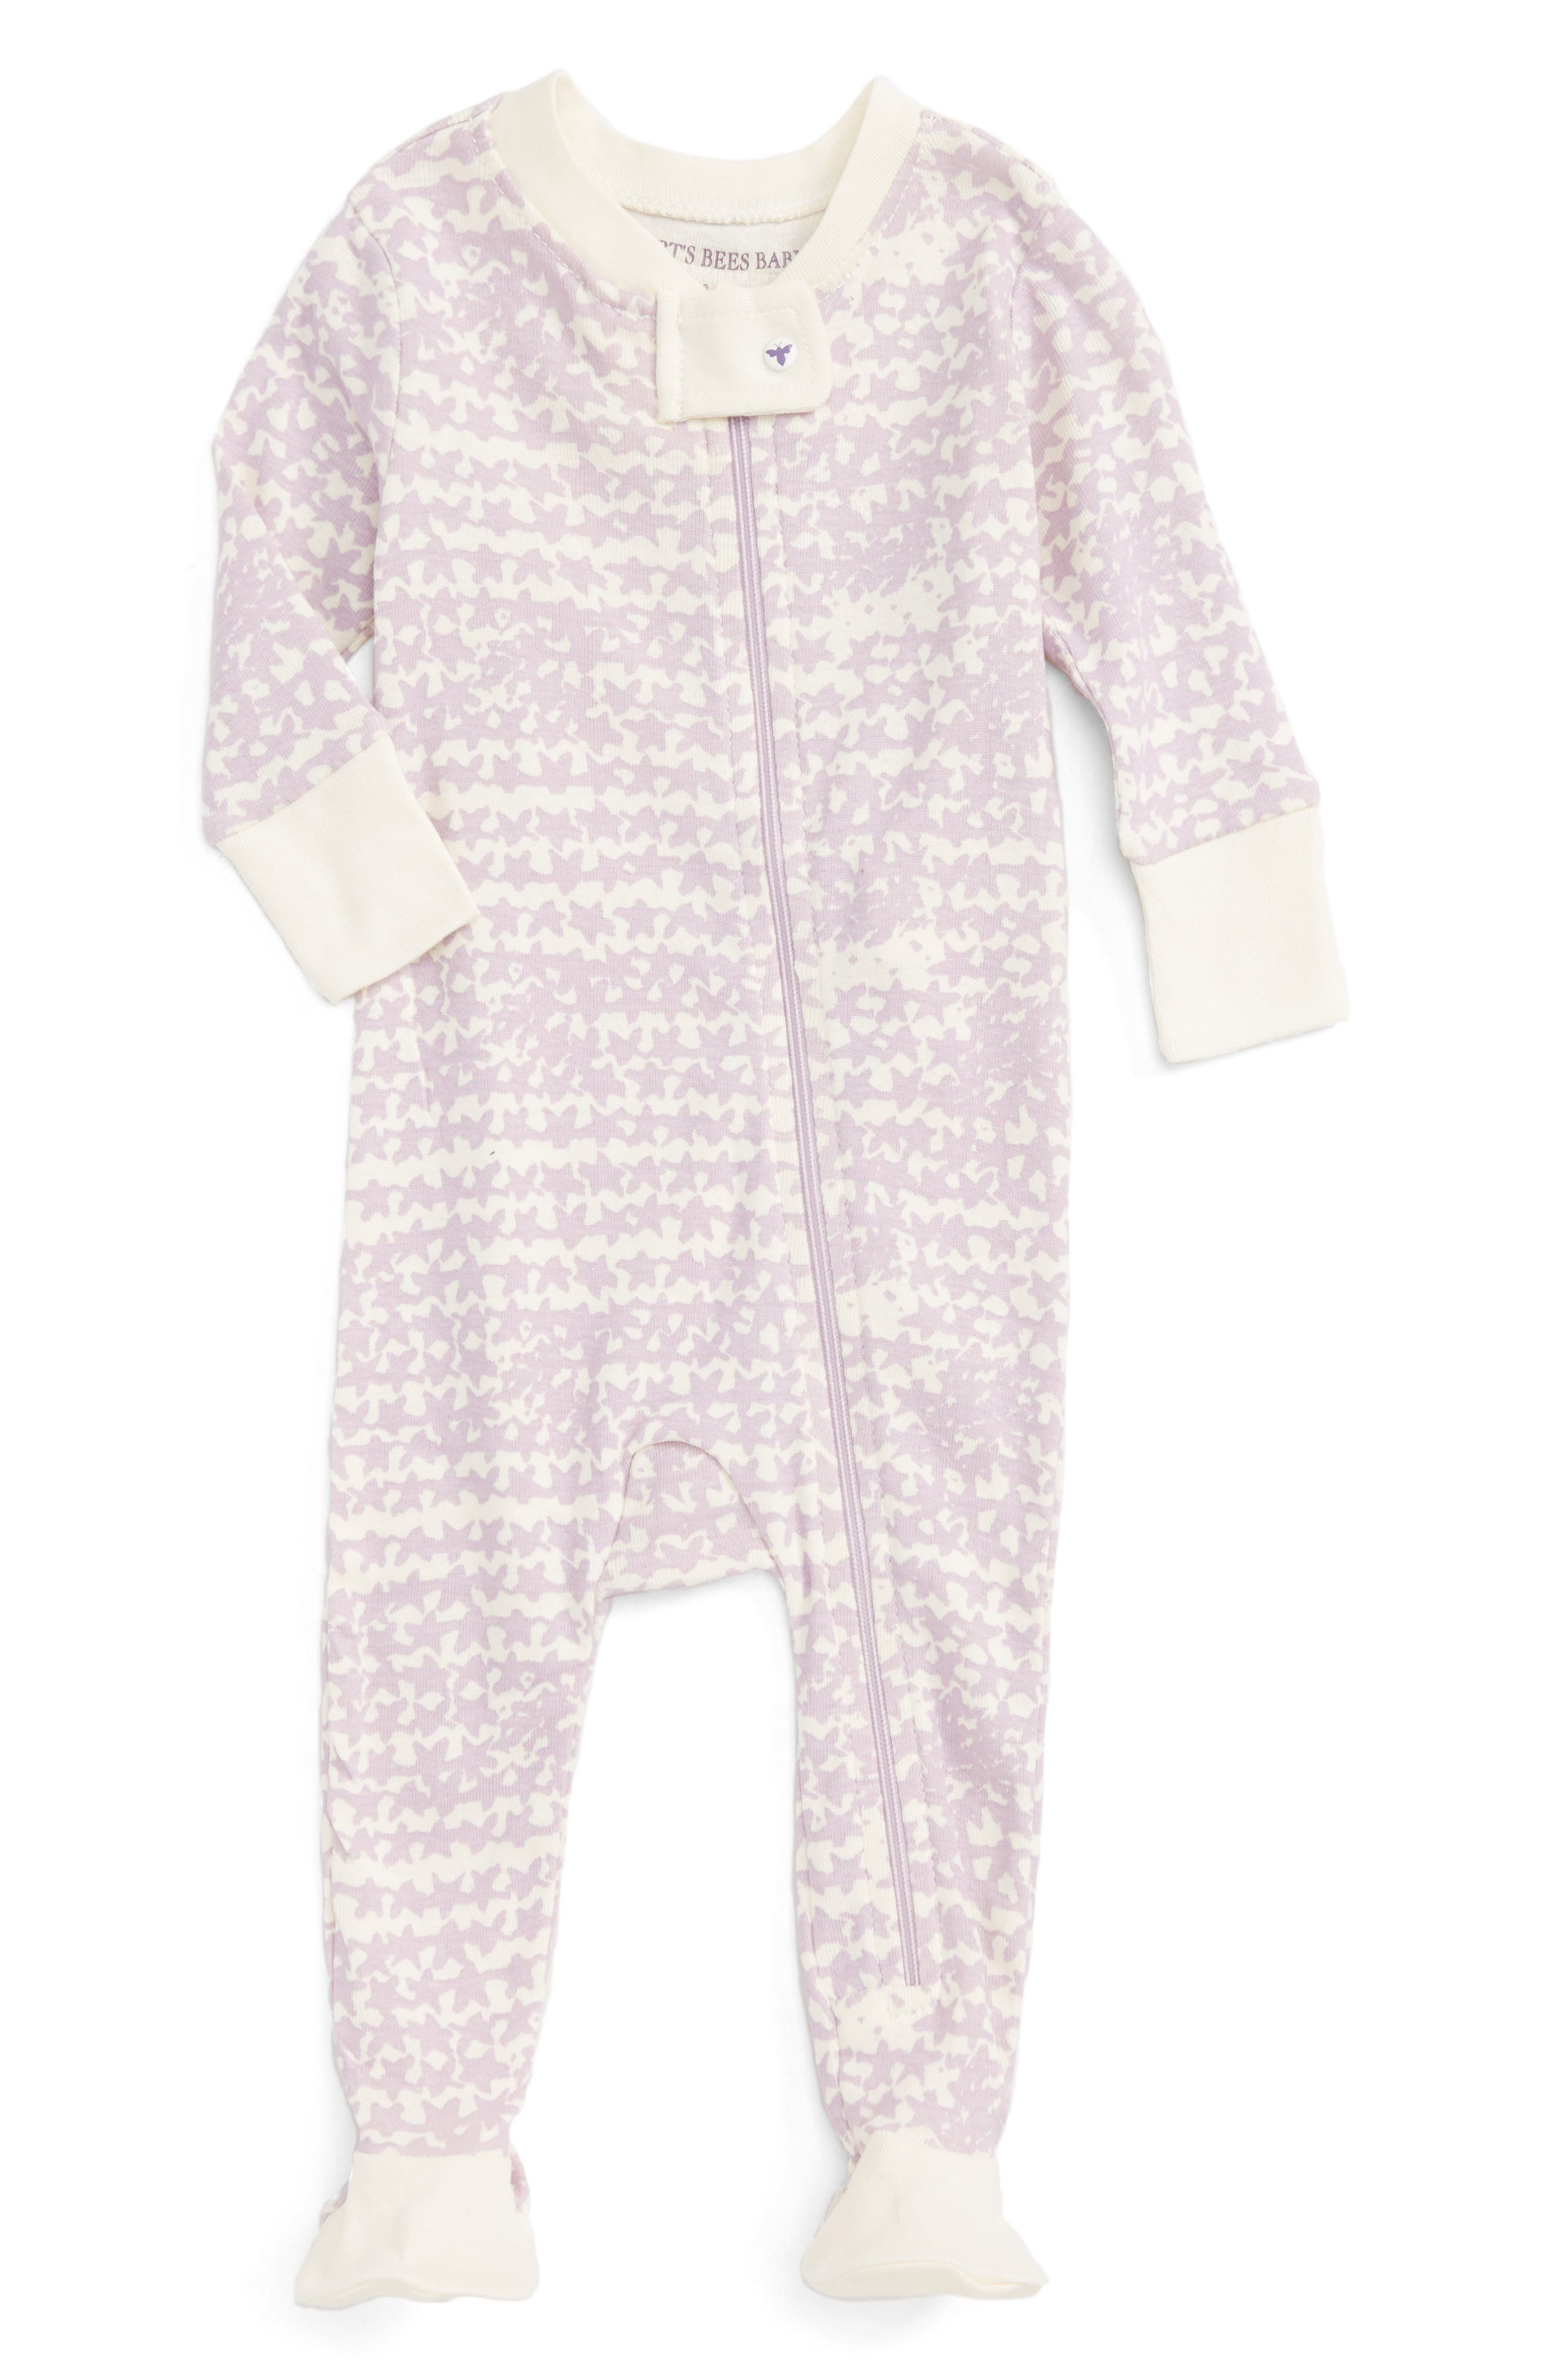 Burt's Bees Baby Clustered Star Fitted One-Piece Footed Pajamas (Baby Girls)